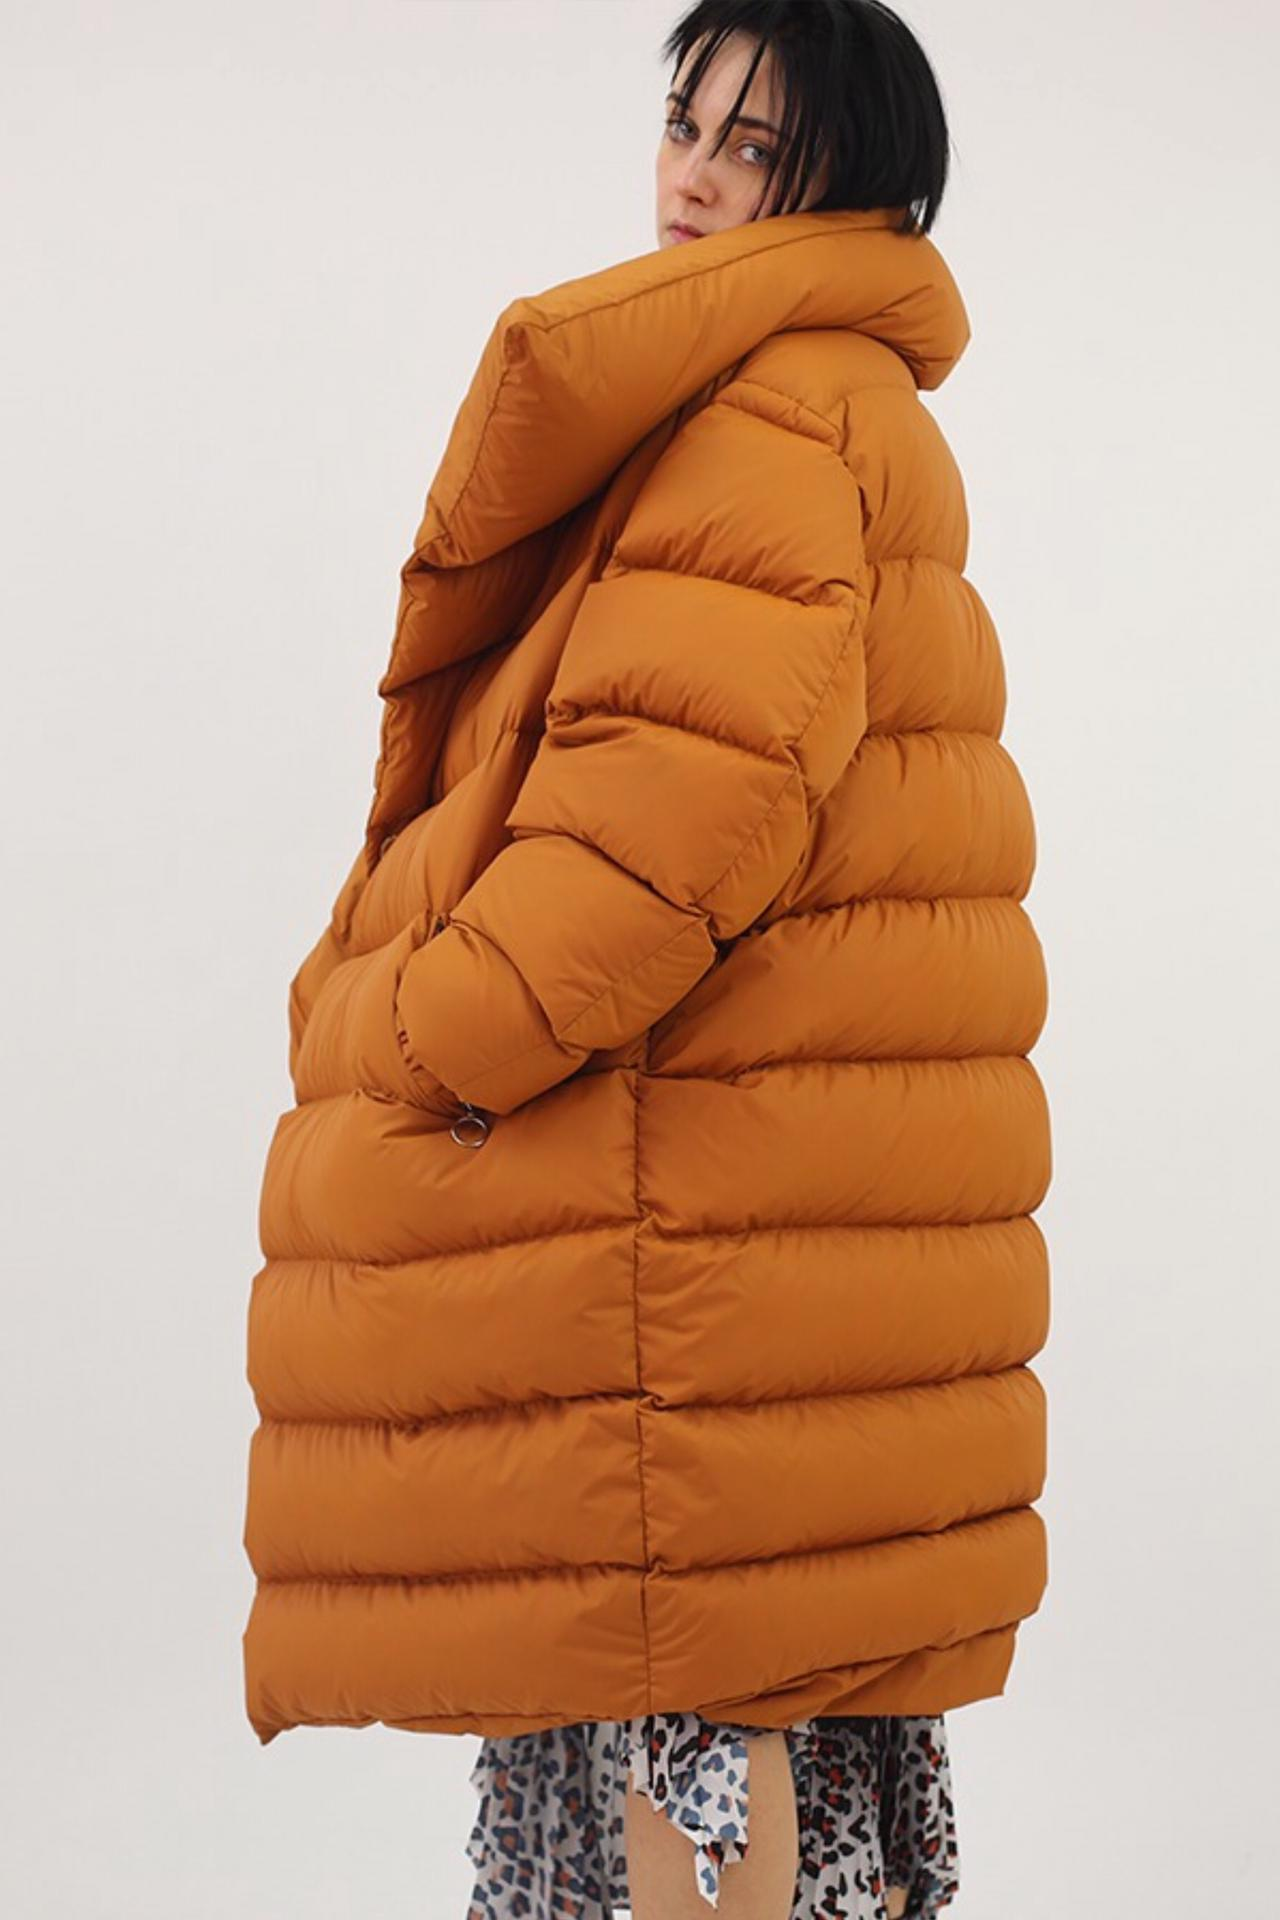 M'A BROWN PUFFA JACKET